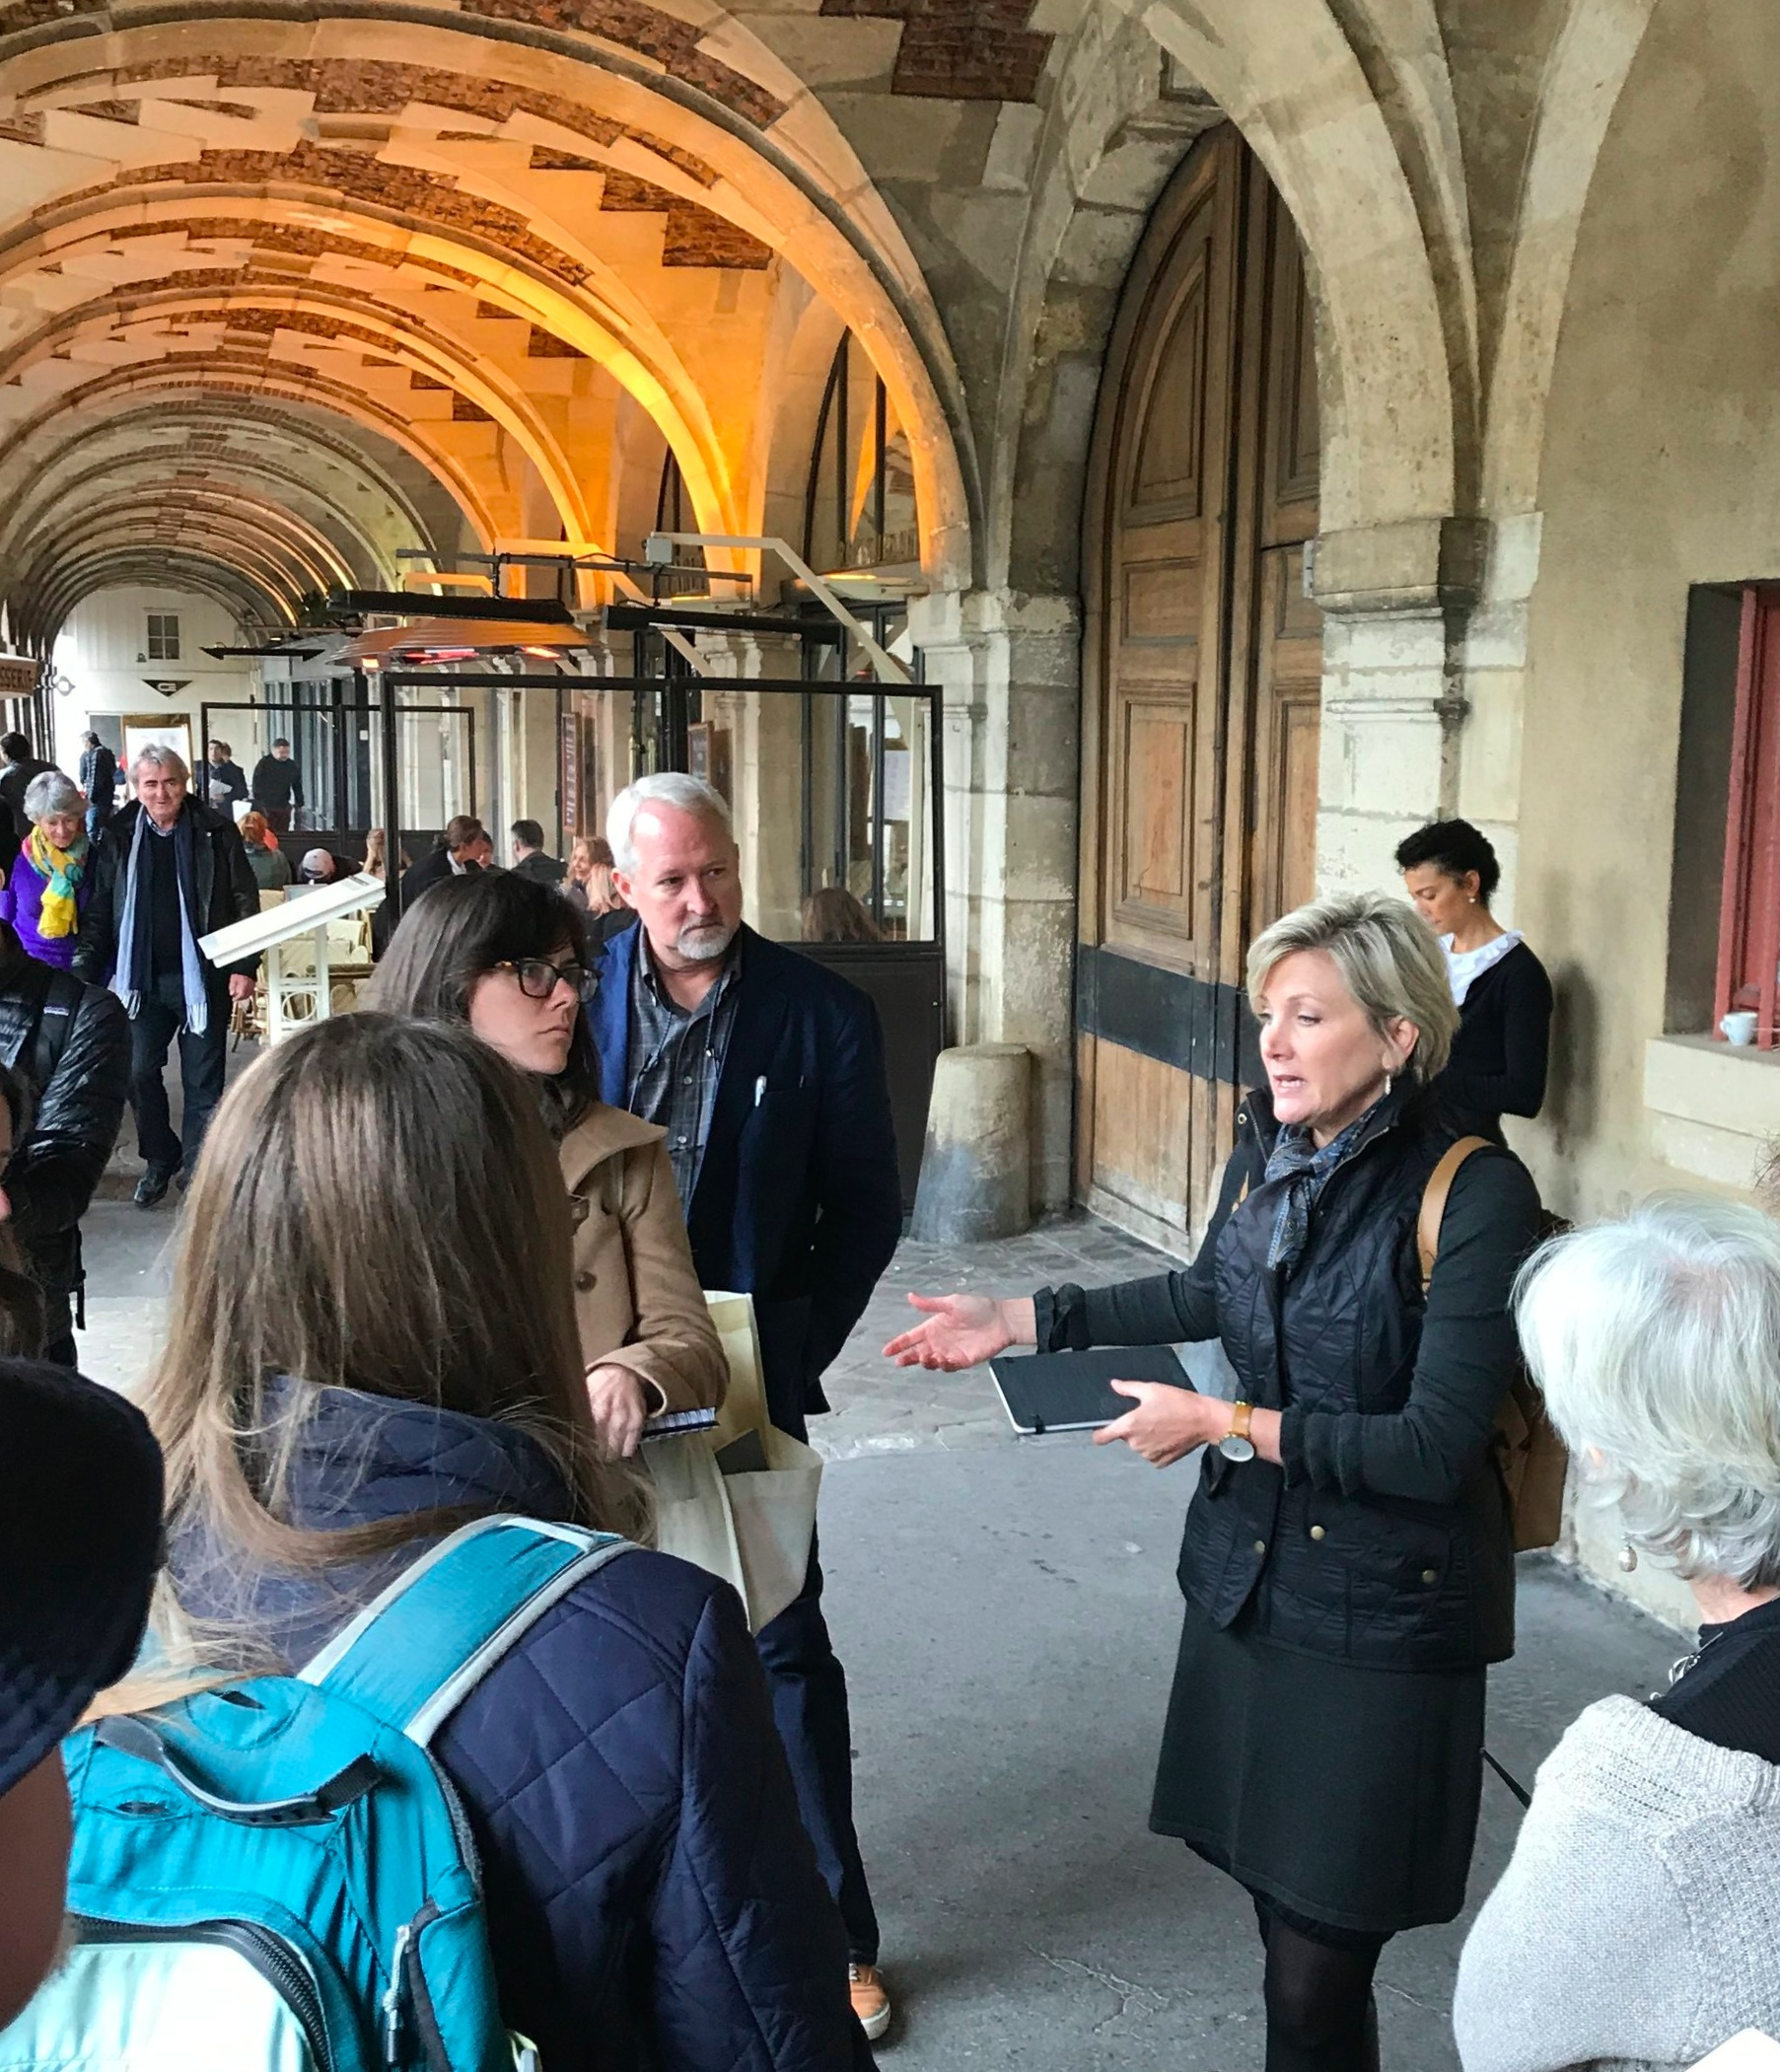 - Conducting a lecture at the Places des Vosges, Paris as part of the Christopher H. Brown drawing tour with the Institute of Classical Architecture & ArtClick here for more information….